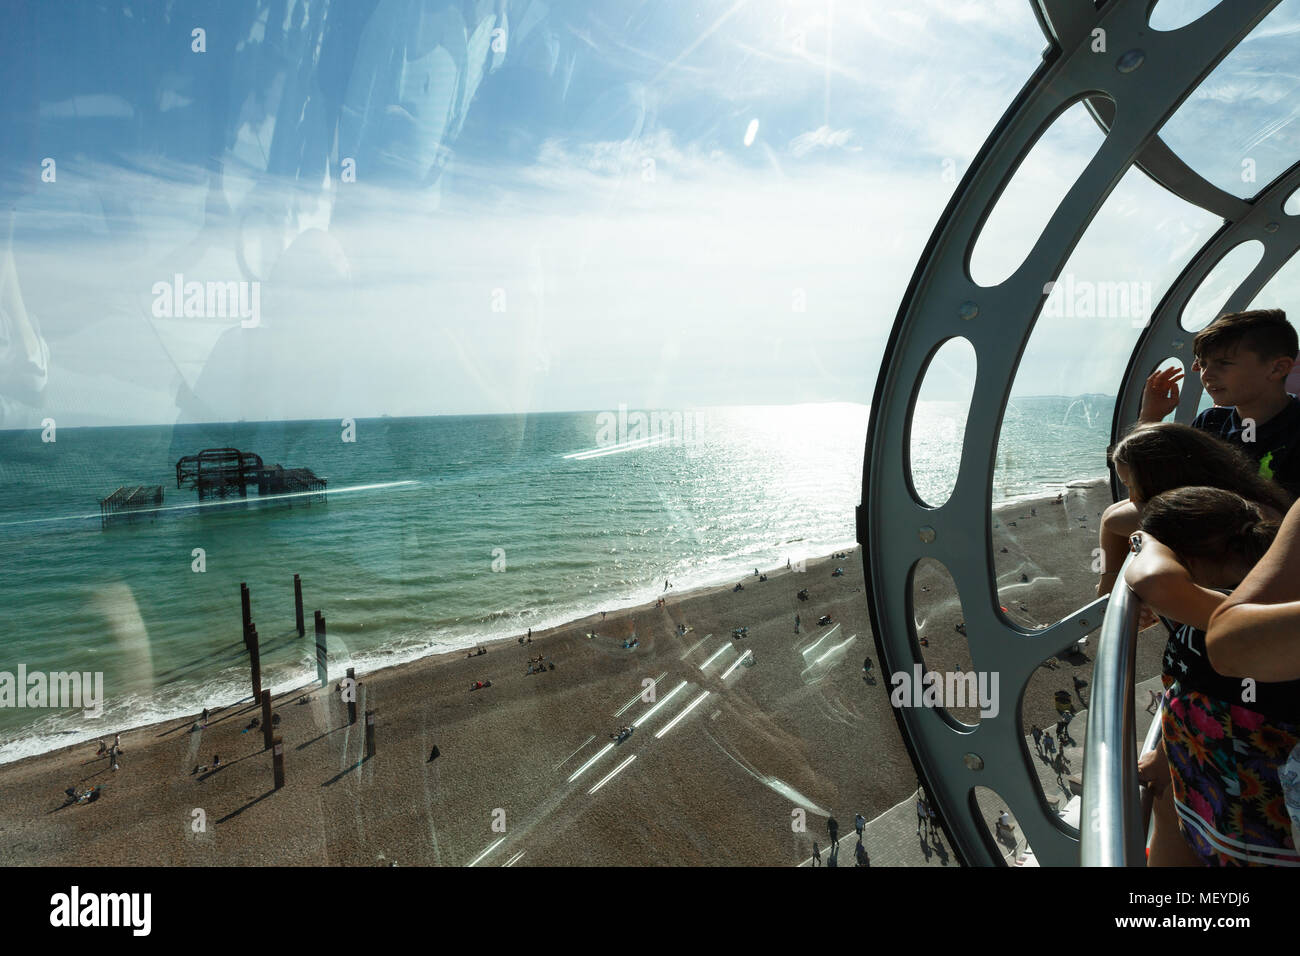 visitors enjoy the view of Brighton coastline from a bird's-eye view - Stock Image